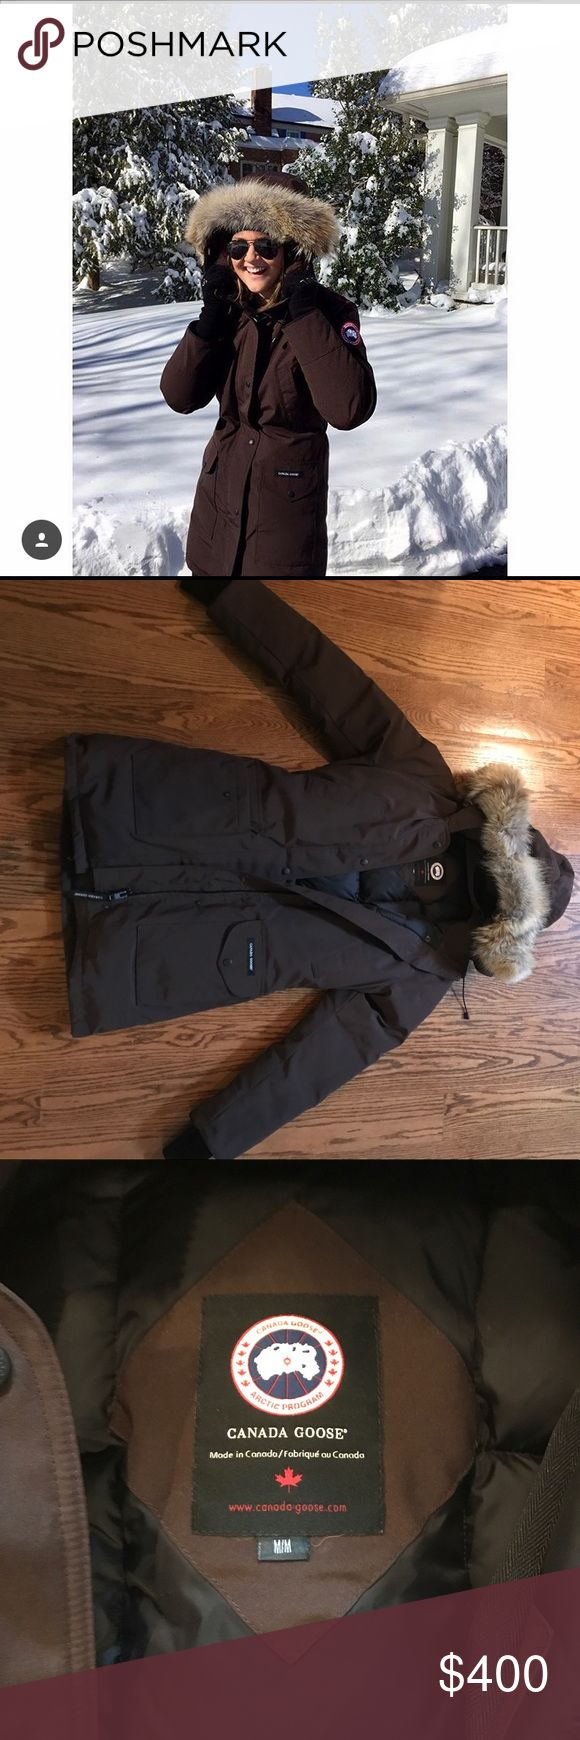 Canada Goose down jacket This is the warmest winter jacket you will ever find and it's super stylish. I've only worn it a couple times so it's basically brand new! I'm going to be very firm on this price because Canada Goose never goes on sale and I won't sell it for anything less than $375. Canada Goose Jackets & Coats Puffers